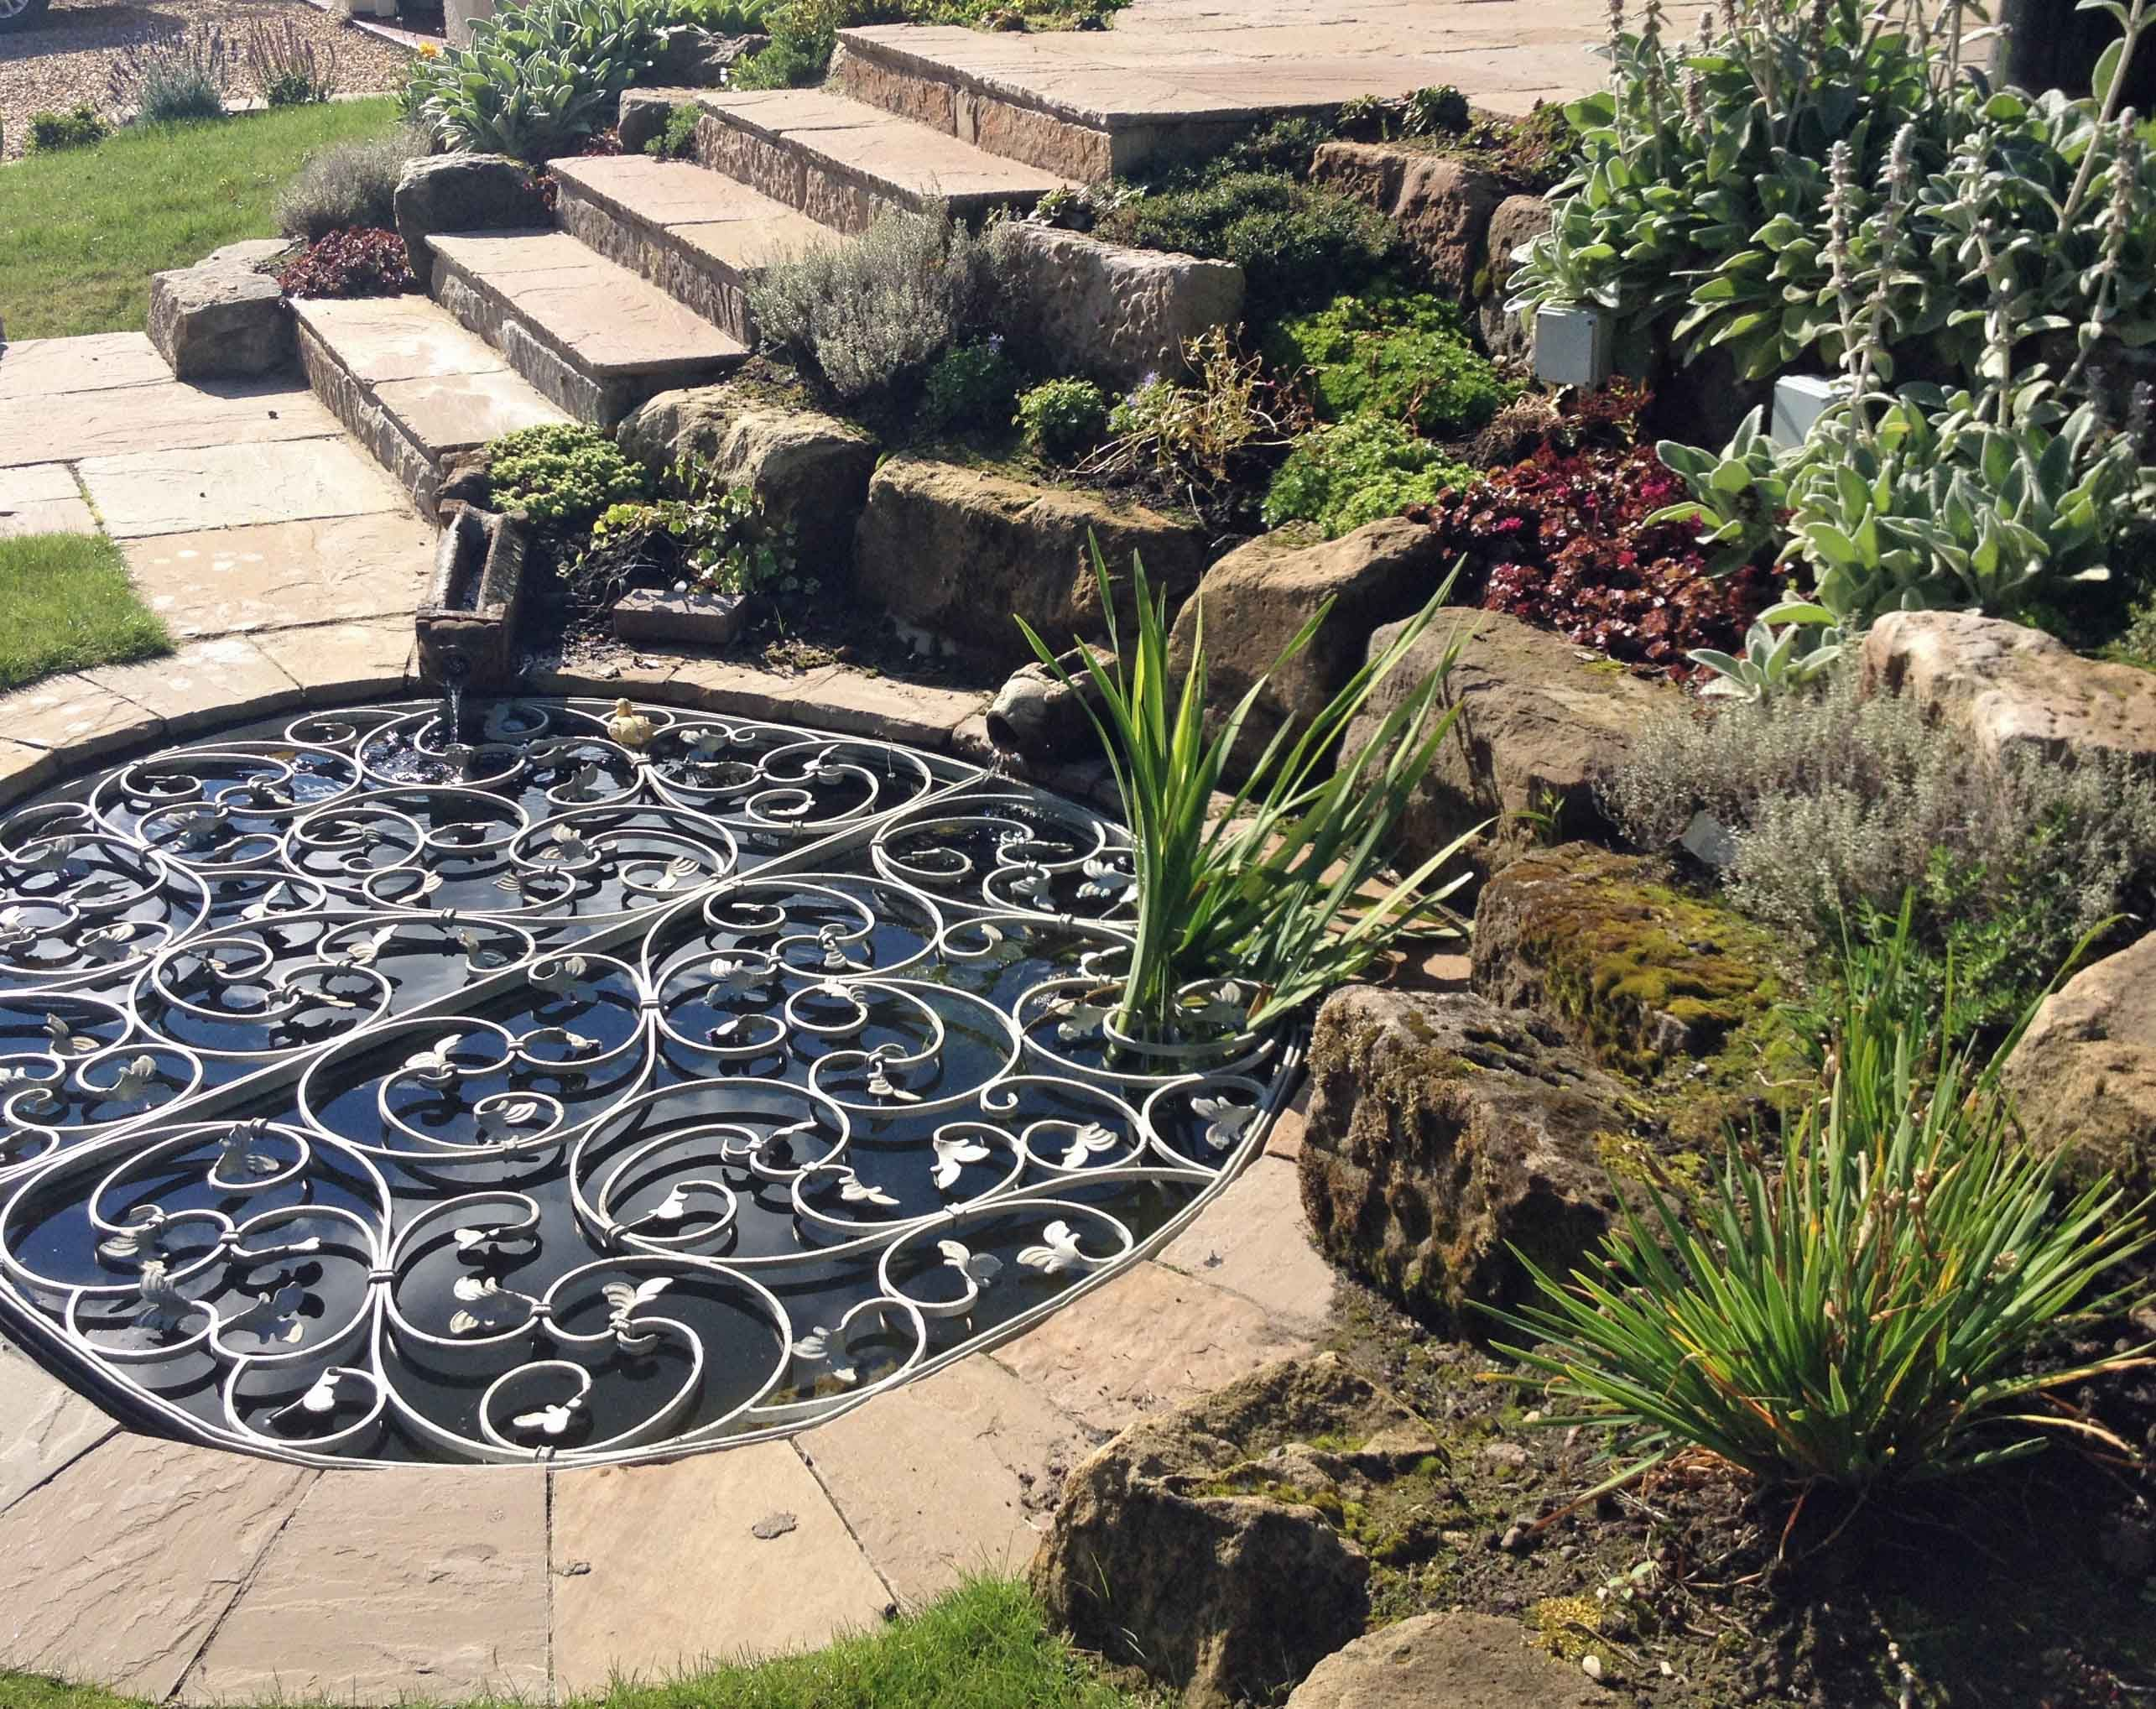 Decorative Safety Pond Grill Which We Designed And Had Installed In